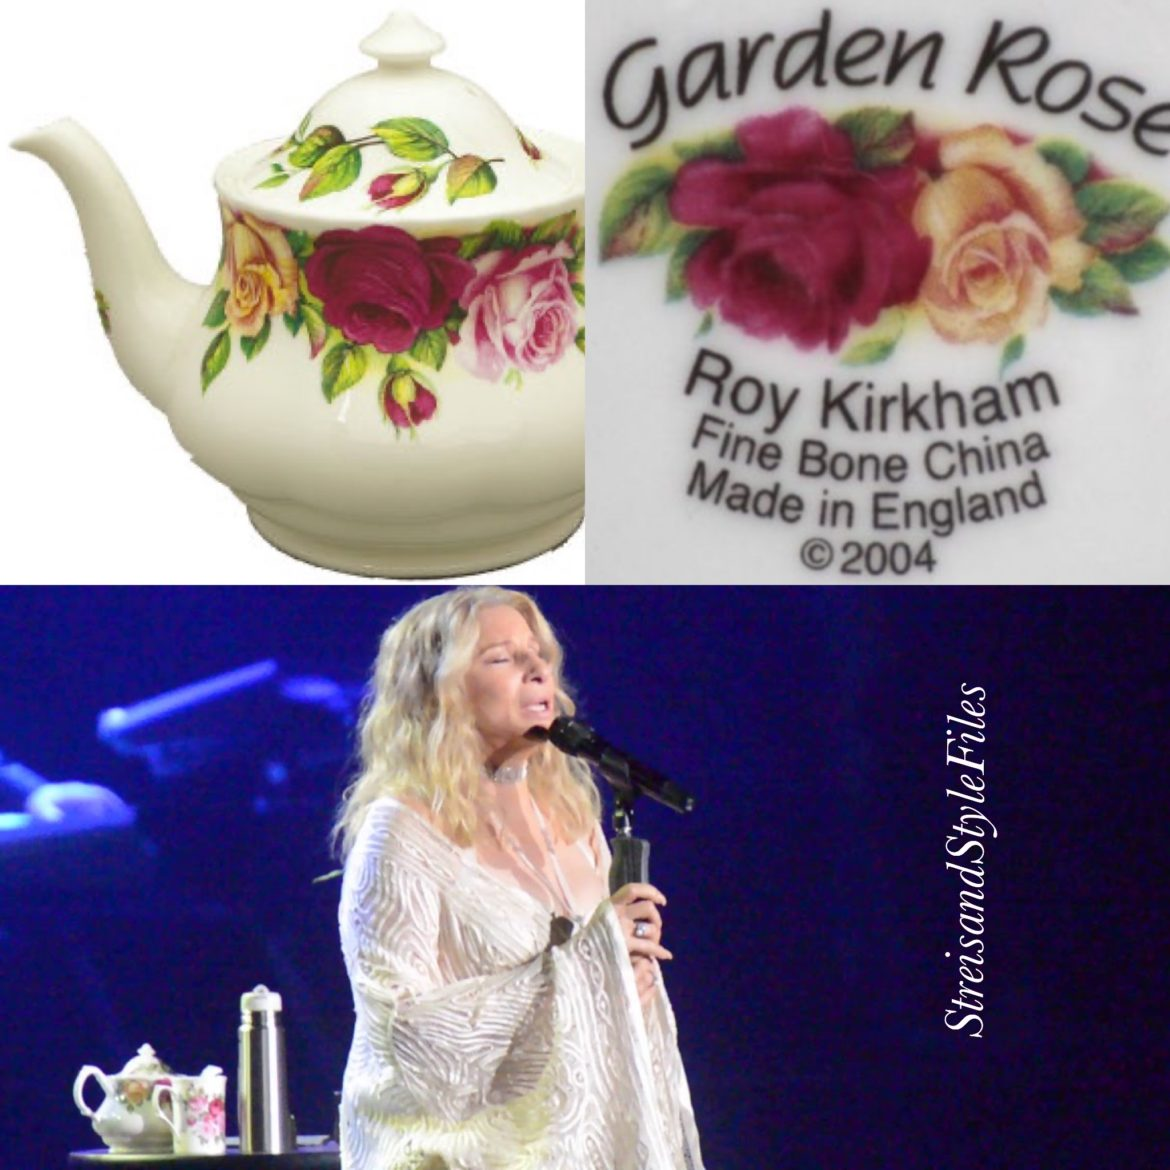 "2019 NYC and Chicago concerts Roy Kirkham ""Garden Roses"" teapot"